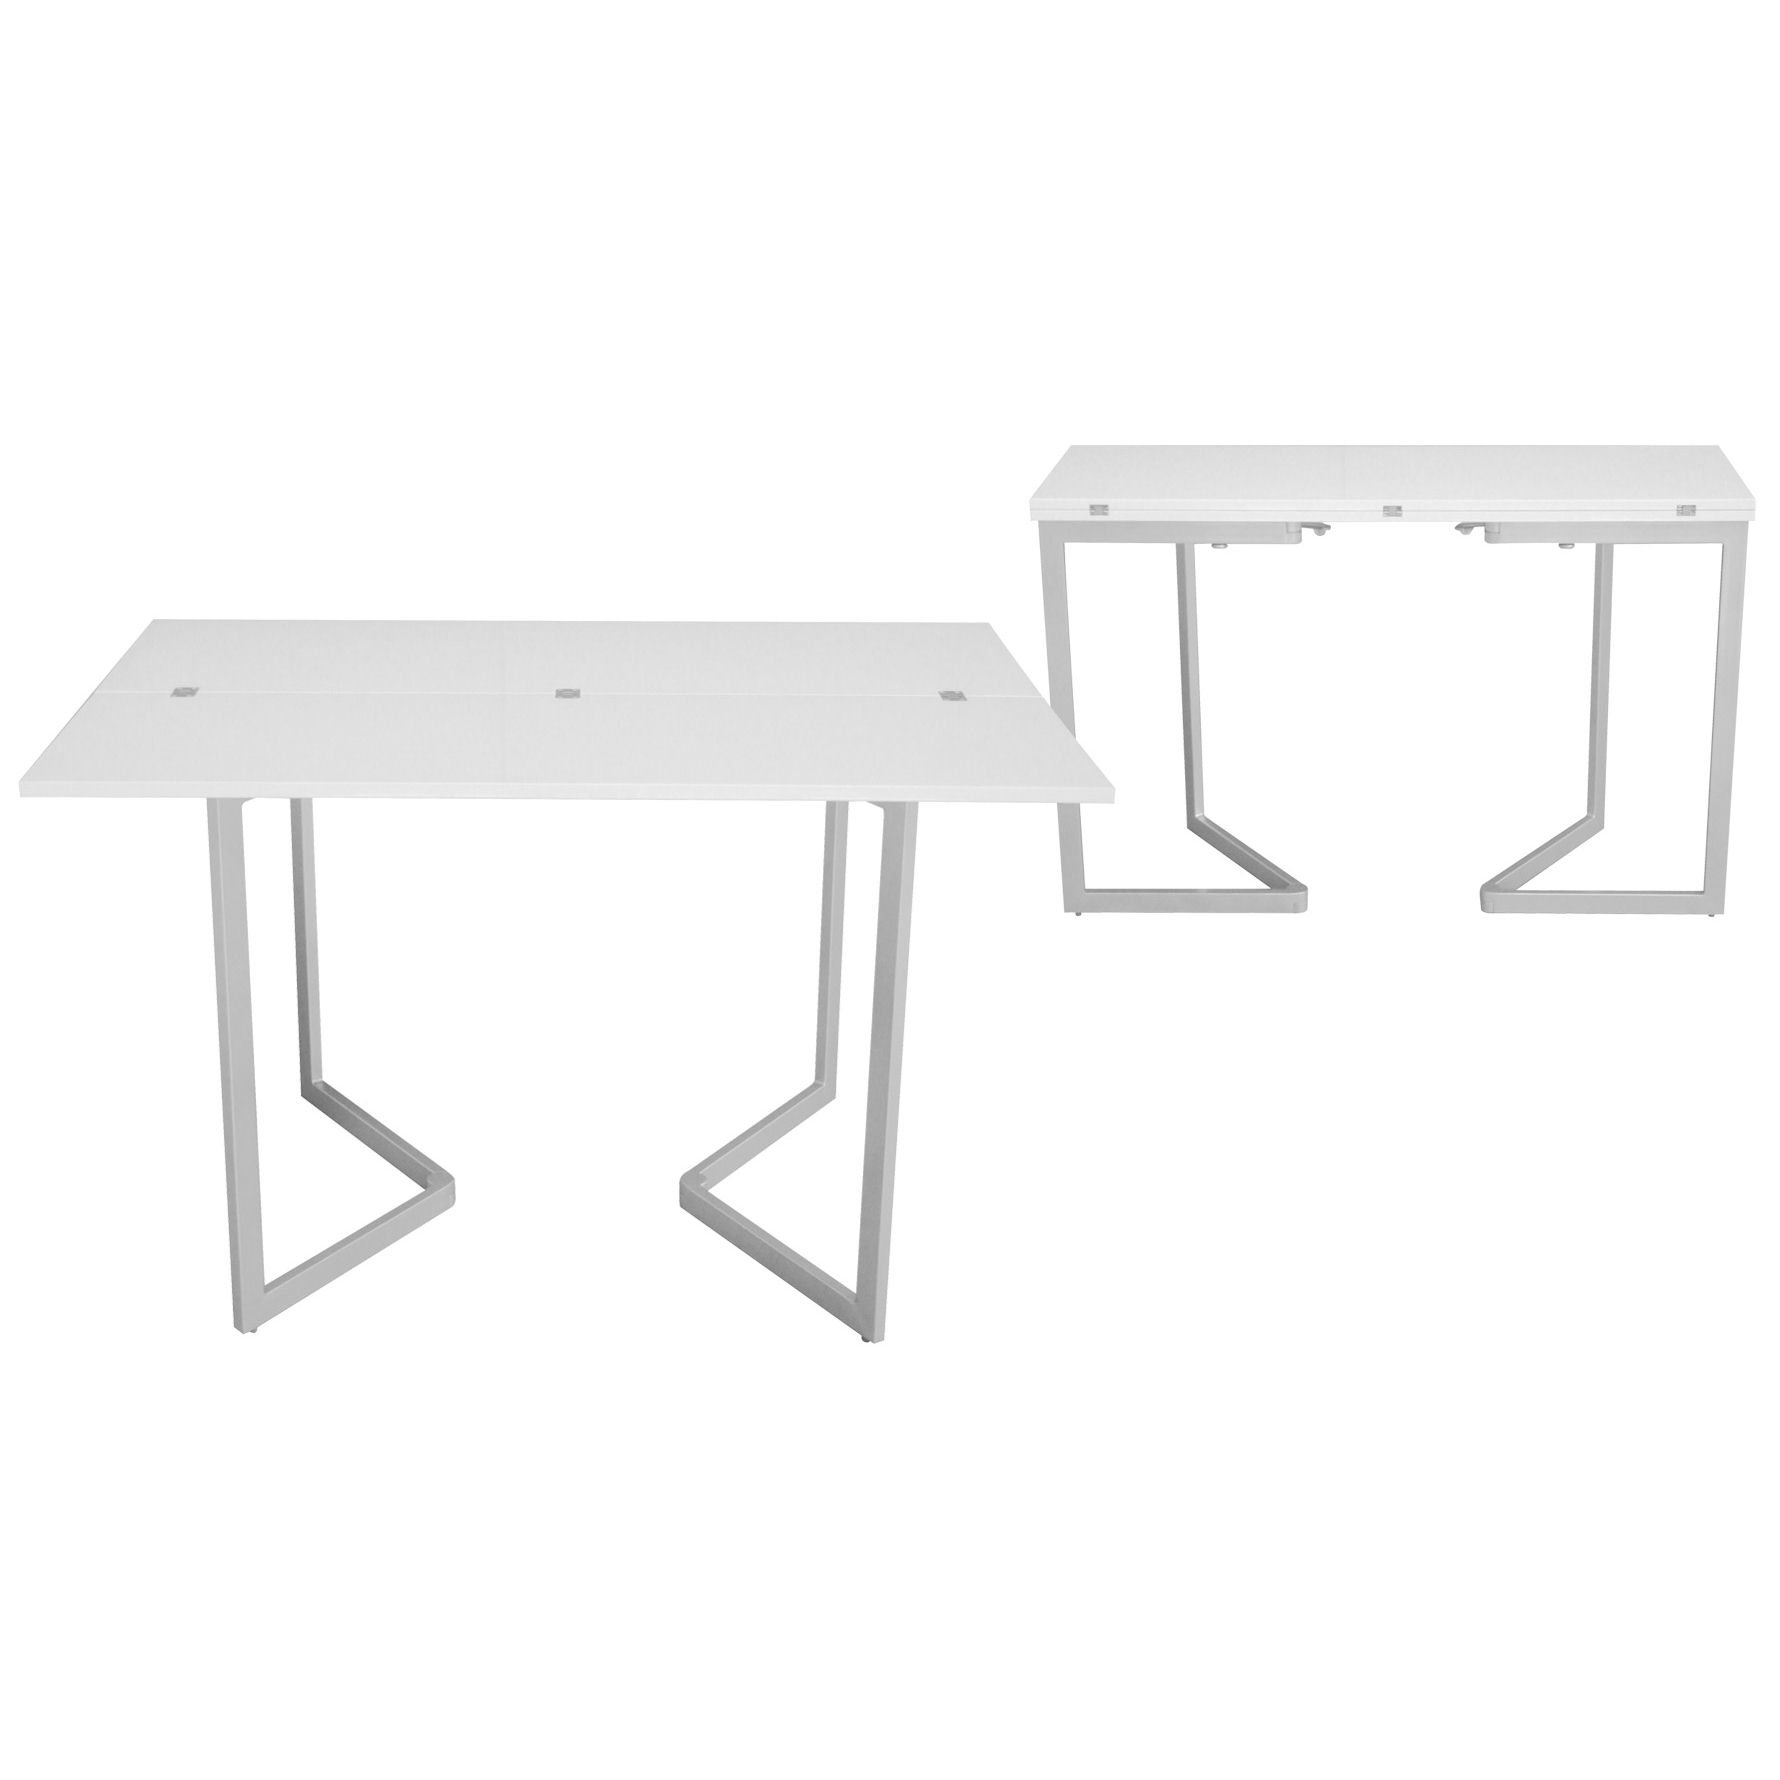 Deco in paris table console extensible blanche laquee - Table console extensible blanche ...